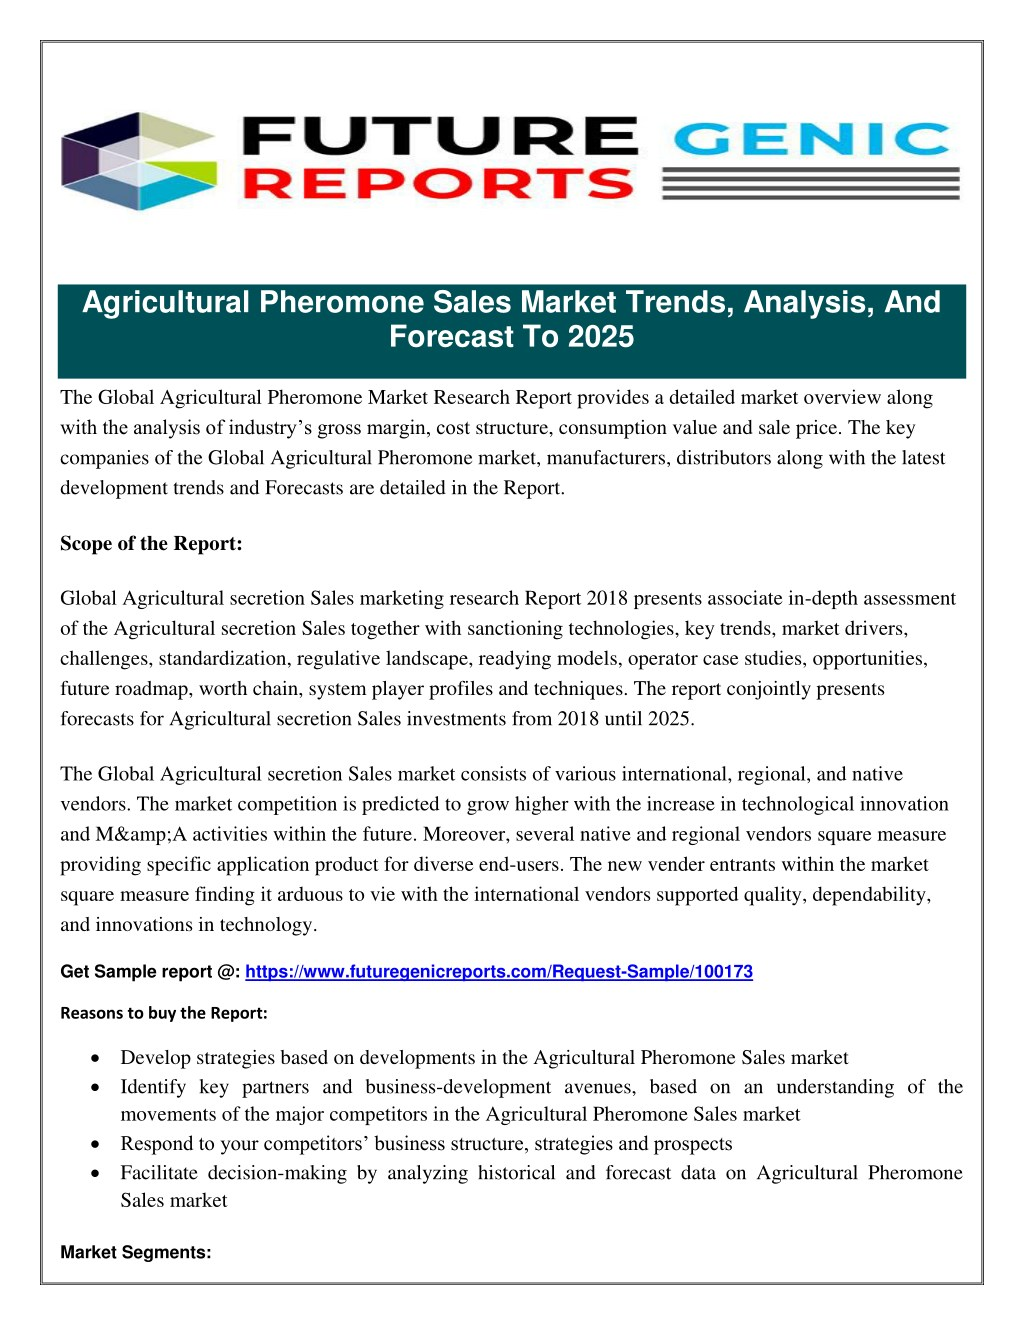 Ppt  Agricultural Pheromone Sales Market Analysis Based On  Agricultural Pheromone Sales Market Analysis Based On Agricultural And  Commercial Applications   Powerpoint Ppt Presentation